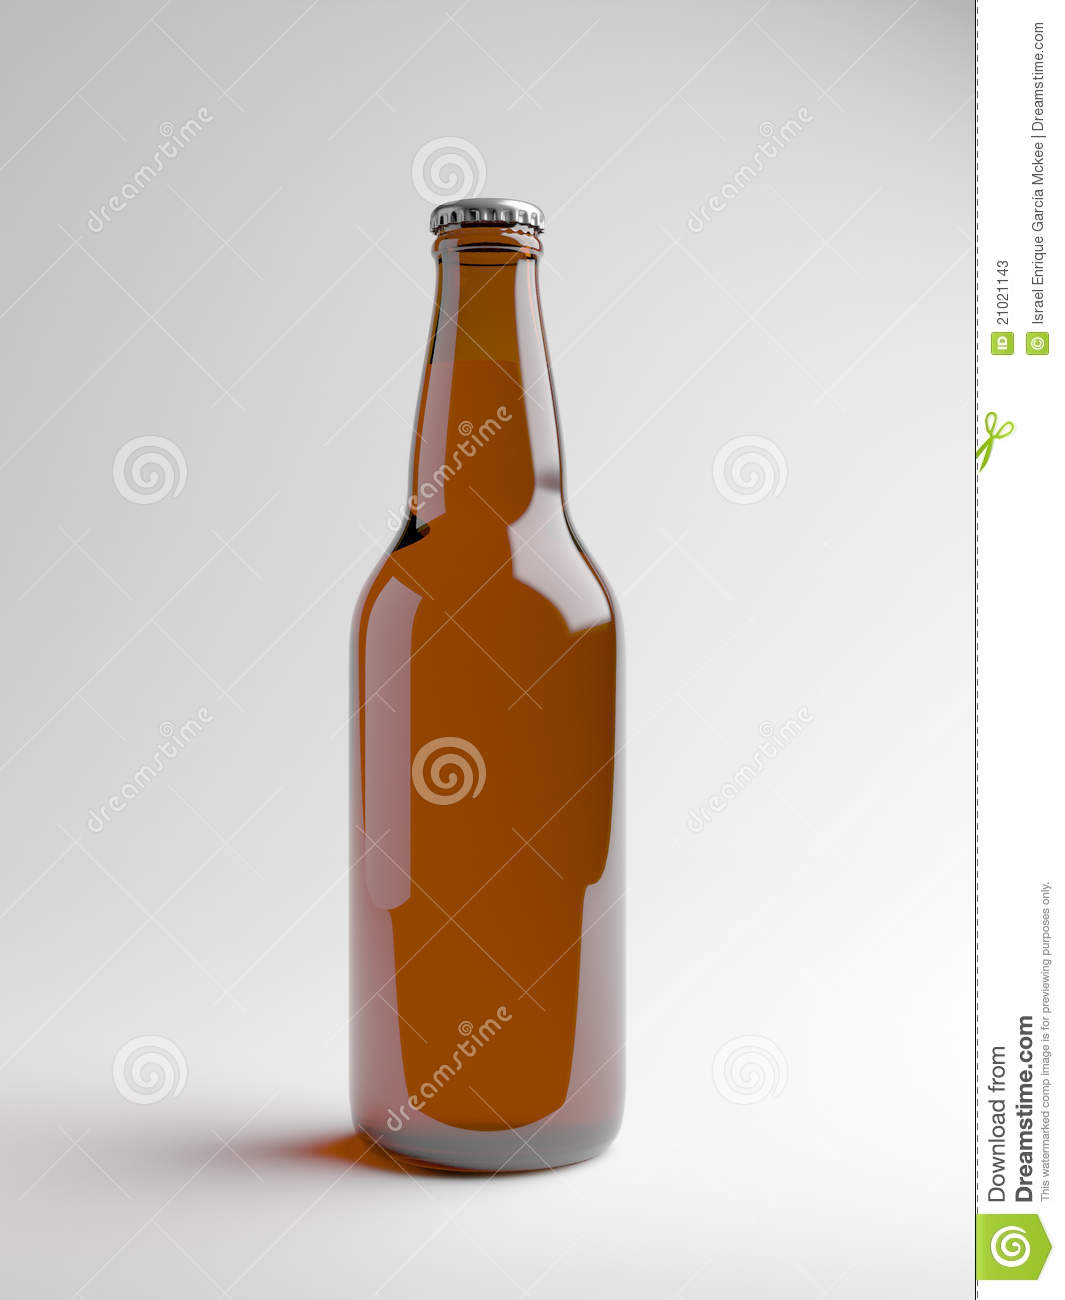 Render of a brown beer bottle over a white background